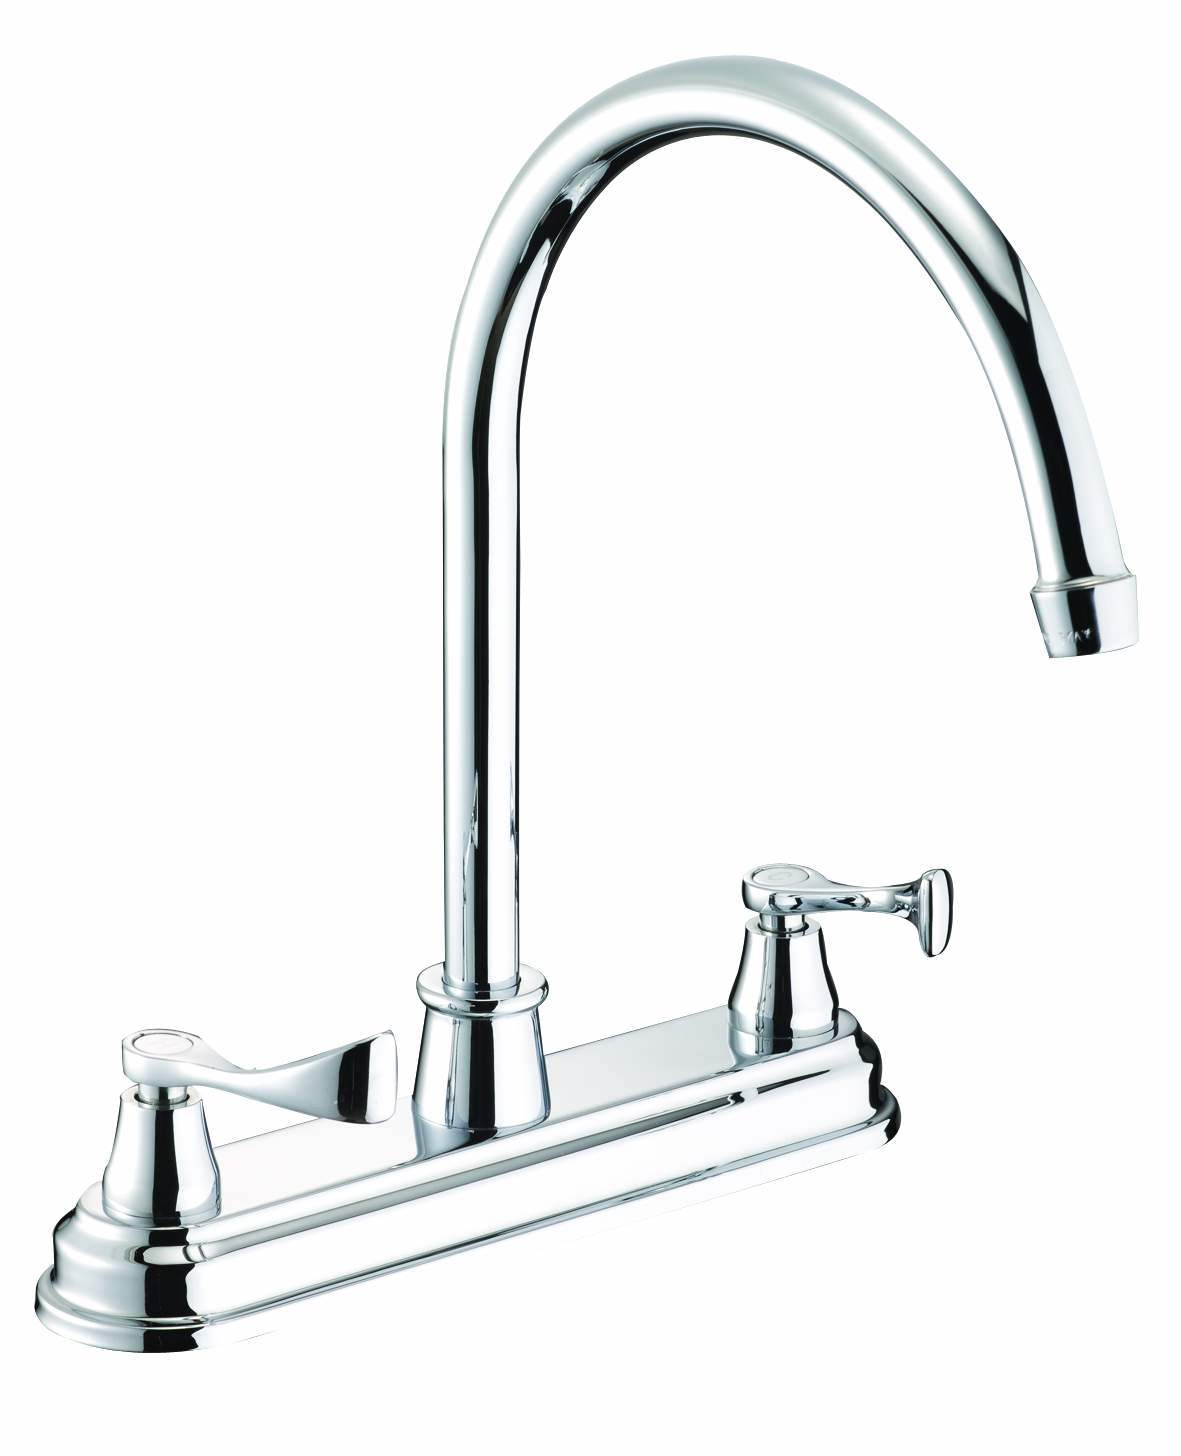 china kitchen faucet mixer tap as2122 china faucet high arc single handle kitchen tap faucet hot and cold